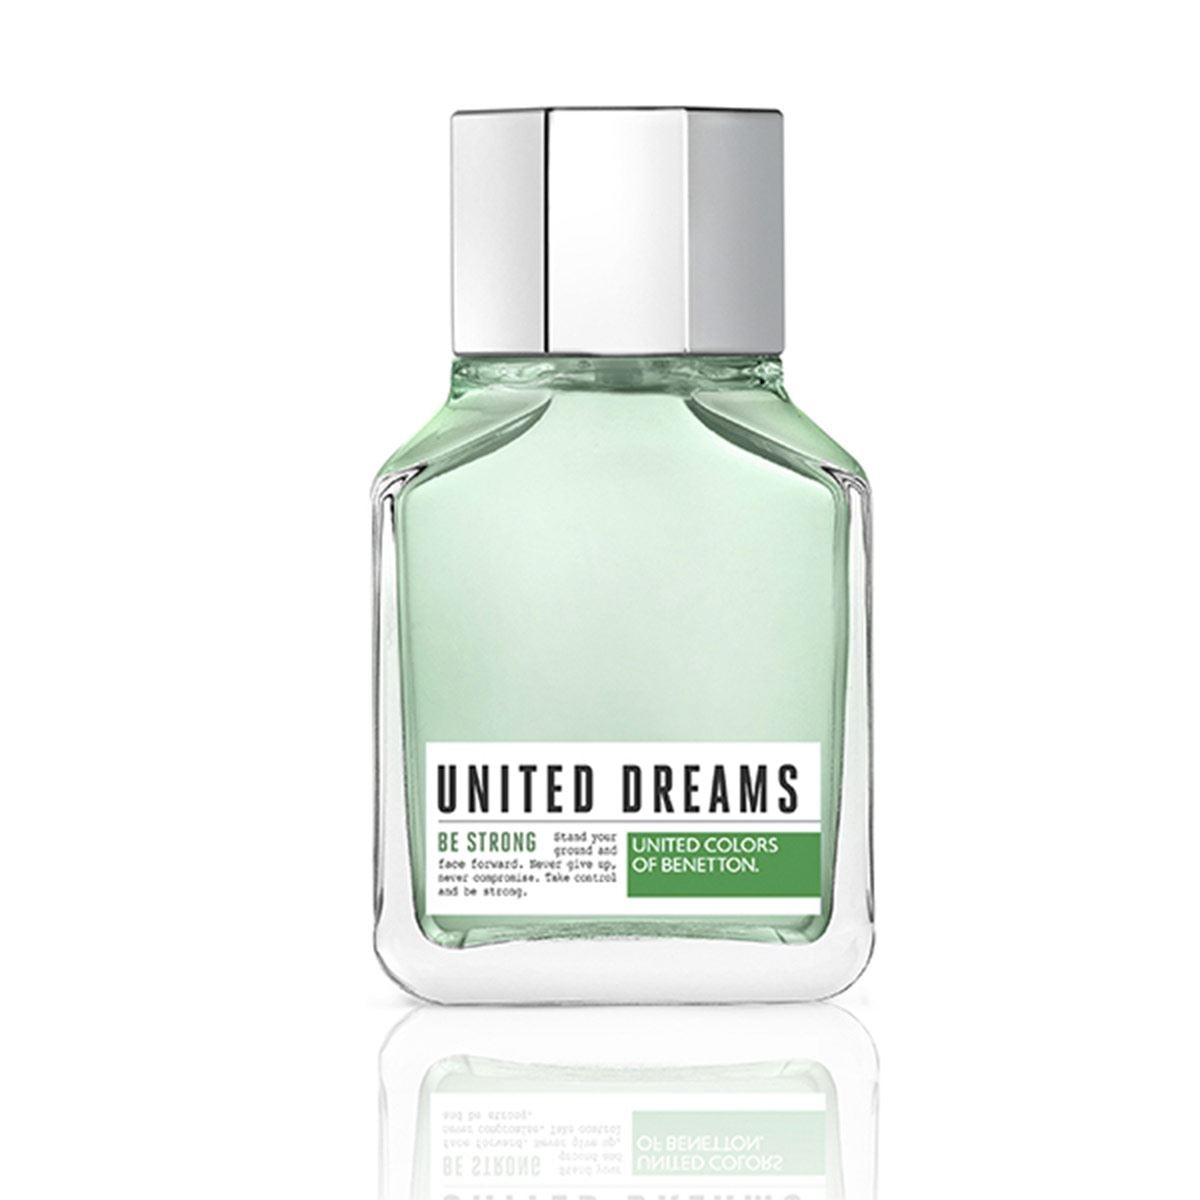 United dreams united colors of benetton mens be strong edt 100ml  - Sanborns